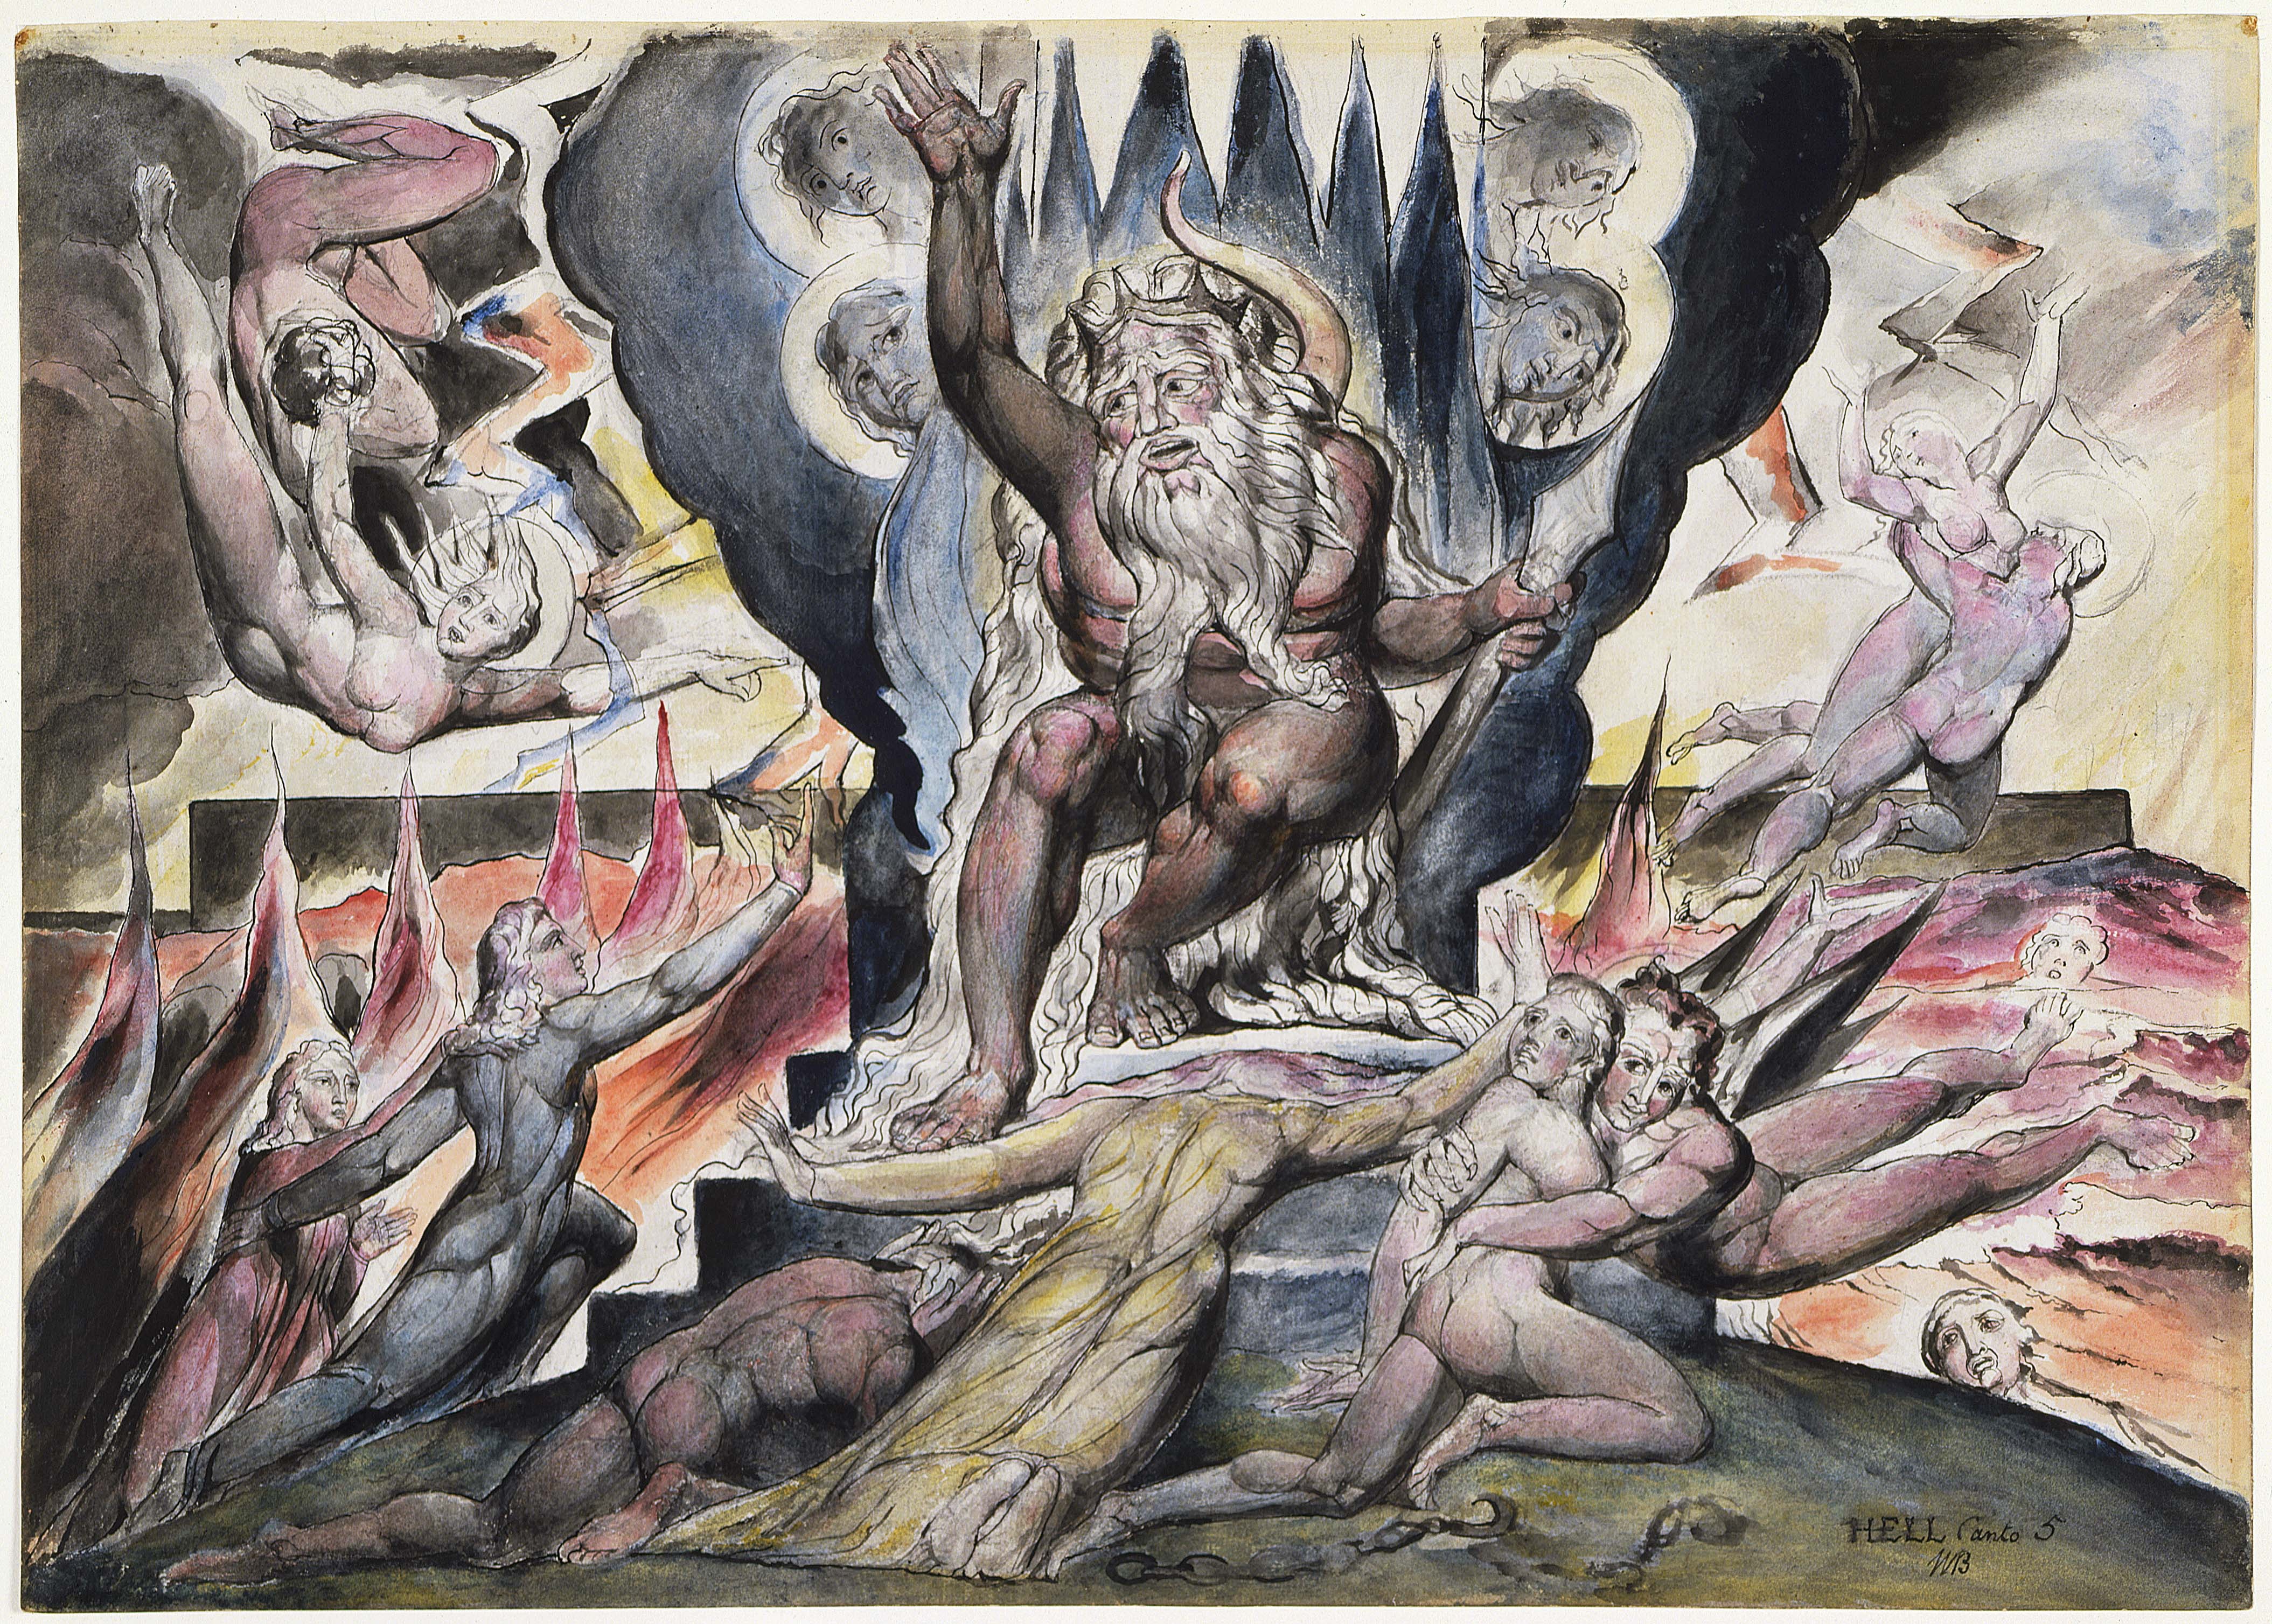 gods divine justice in dantes inferno essay Dante's inferno in dante's inferno com/essays/dantes-inferno/3218 end for which man is made is to be reunited with the divine goodness of god through.